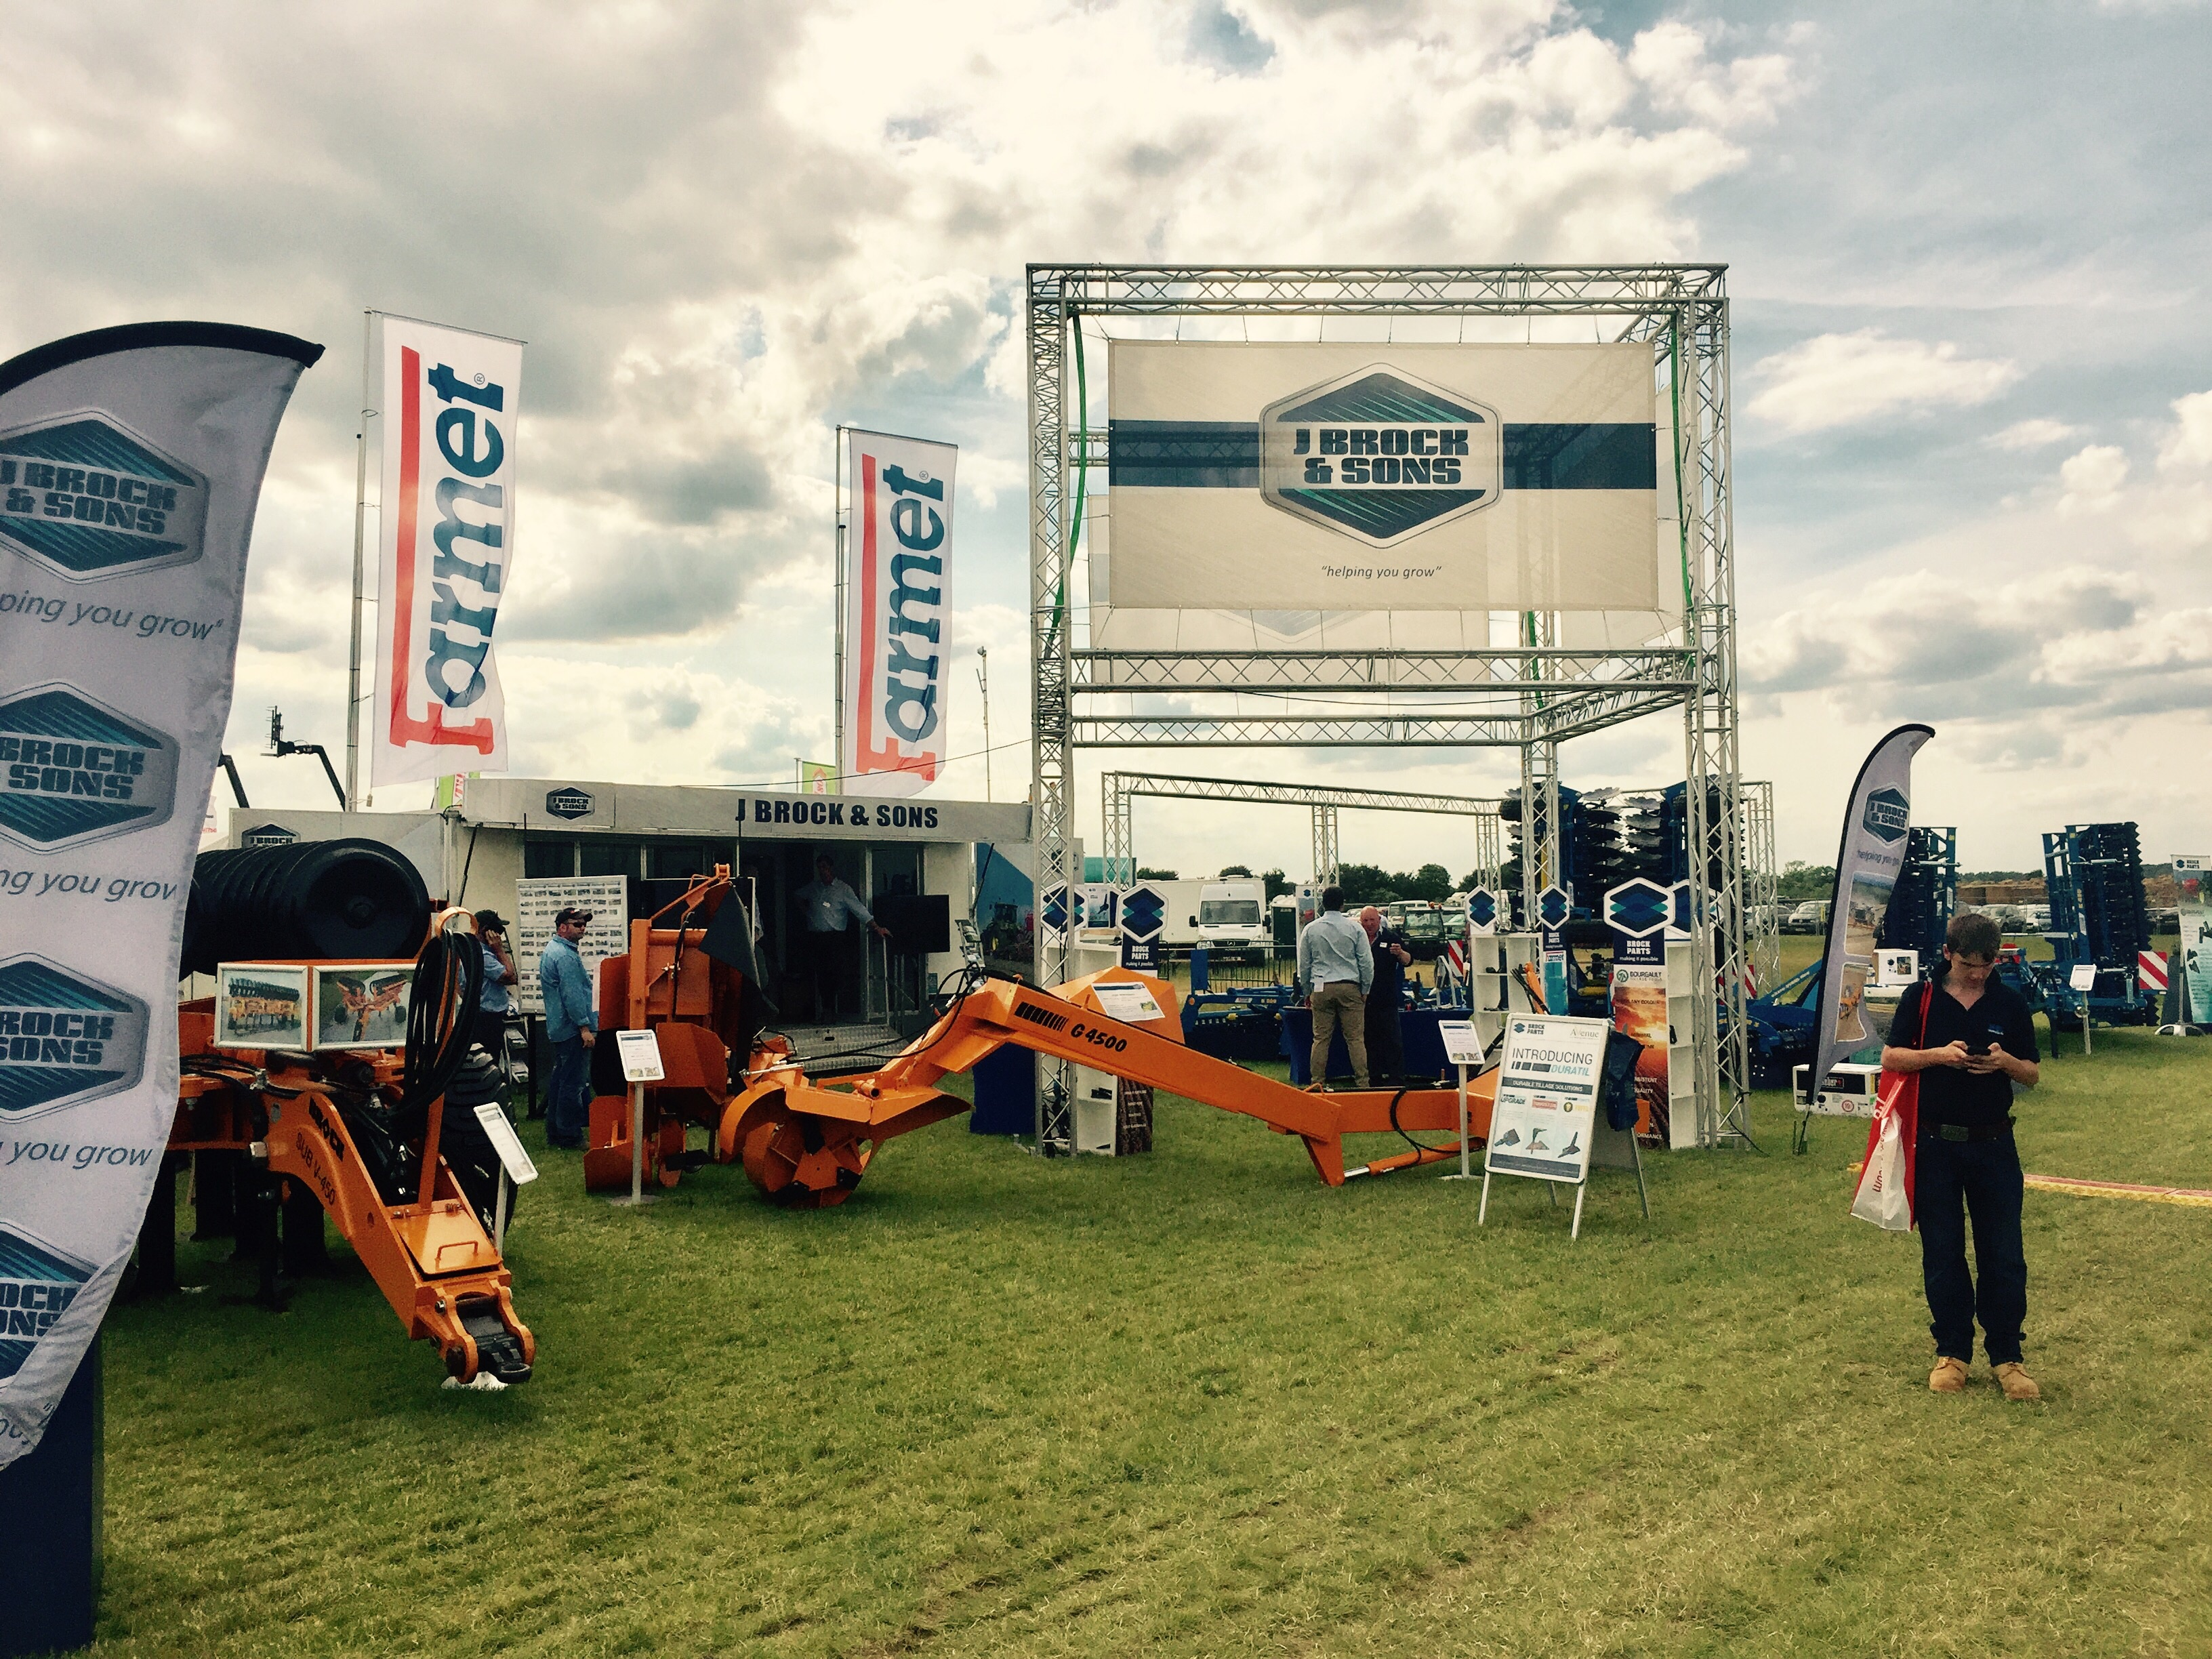 Come and visit us on stand 905 at Cereals this year!